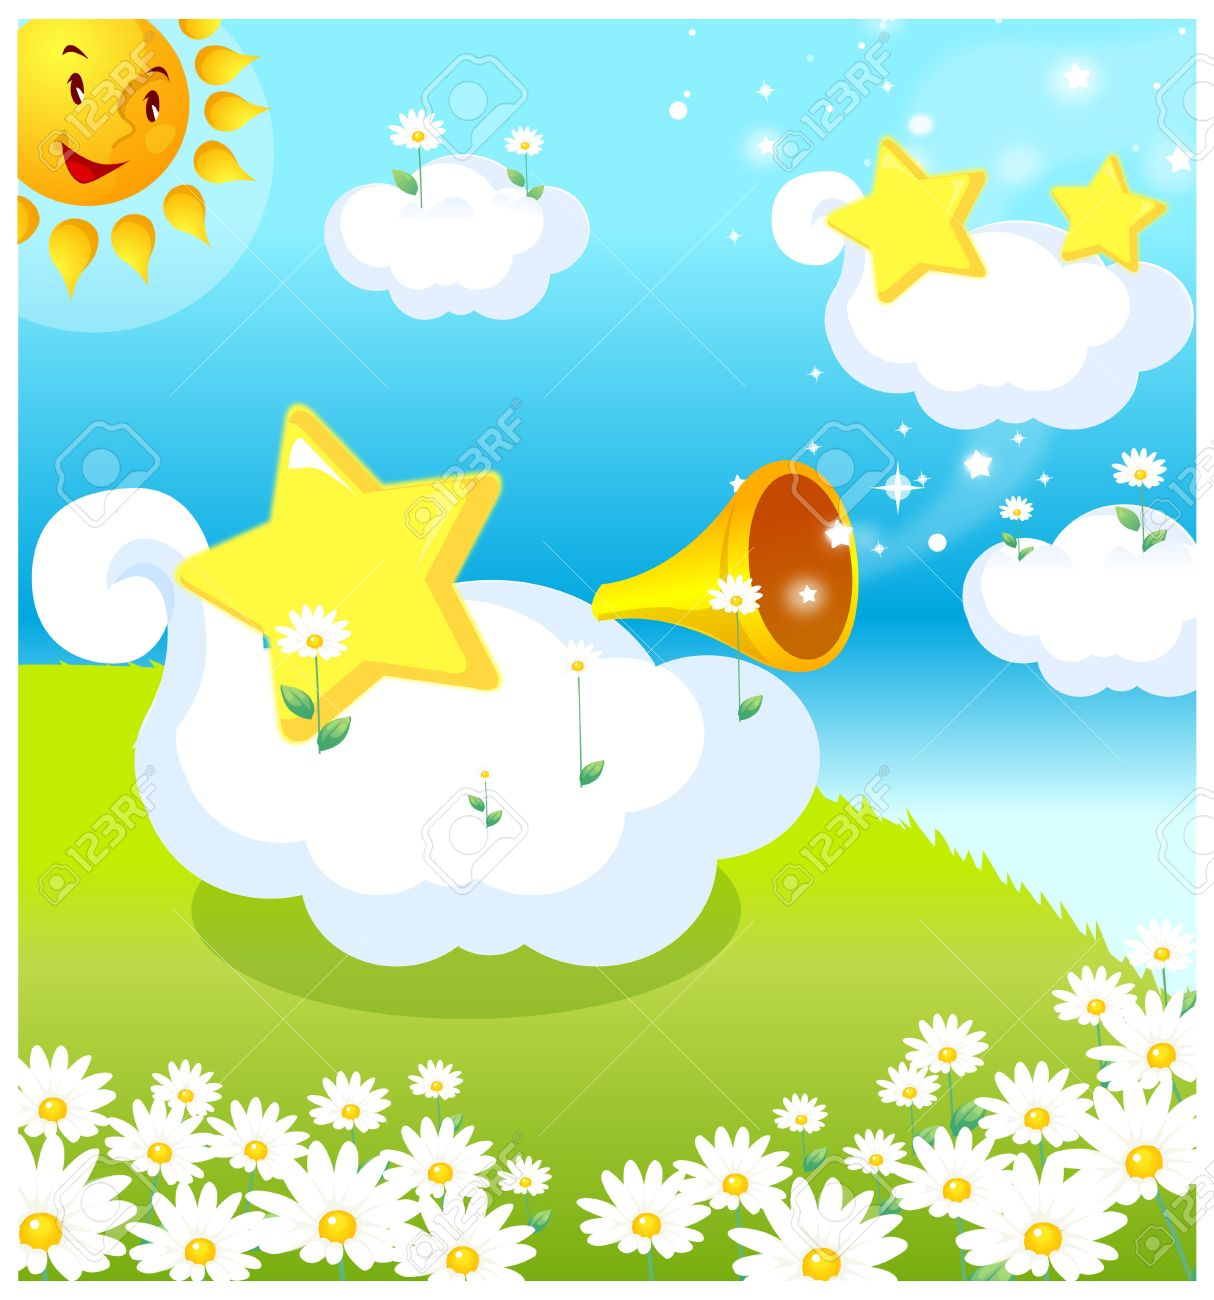 This Illustration Depicts A Young Child's Dream World. Sun, Clouds.